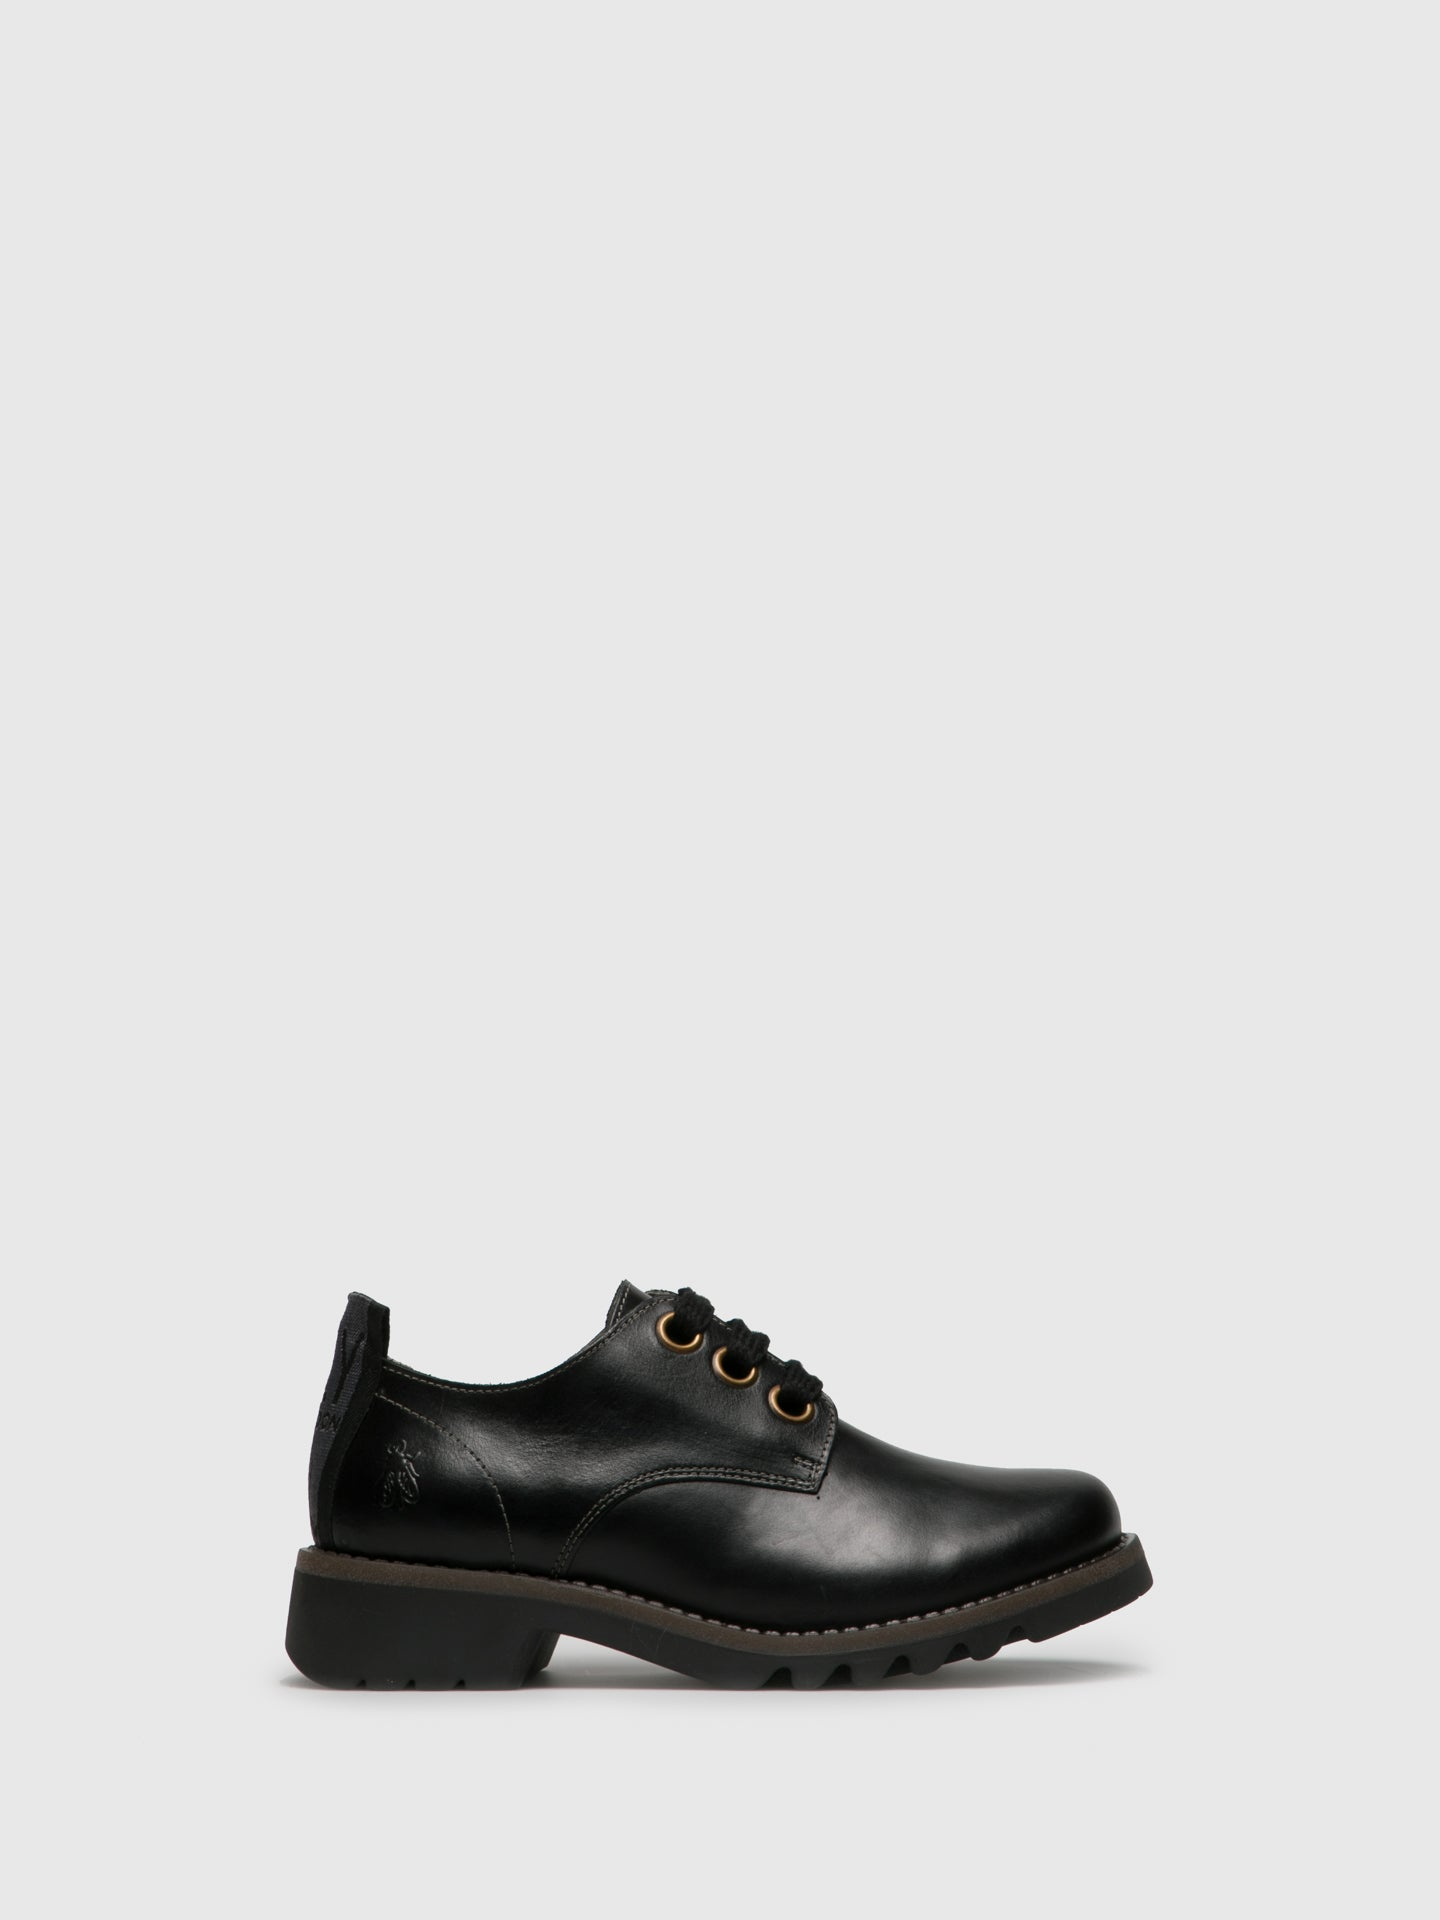 Fly London Matte Black Lace-up Shoes